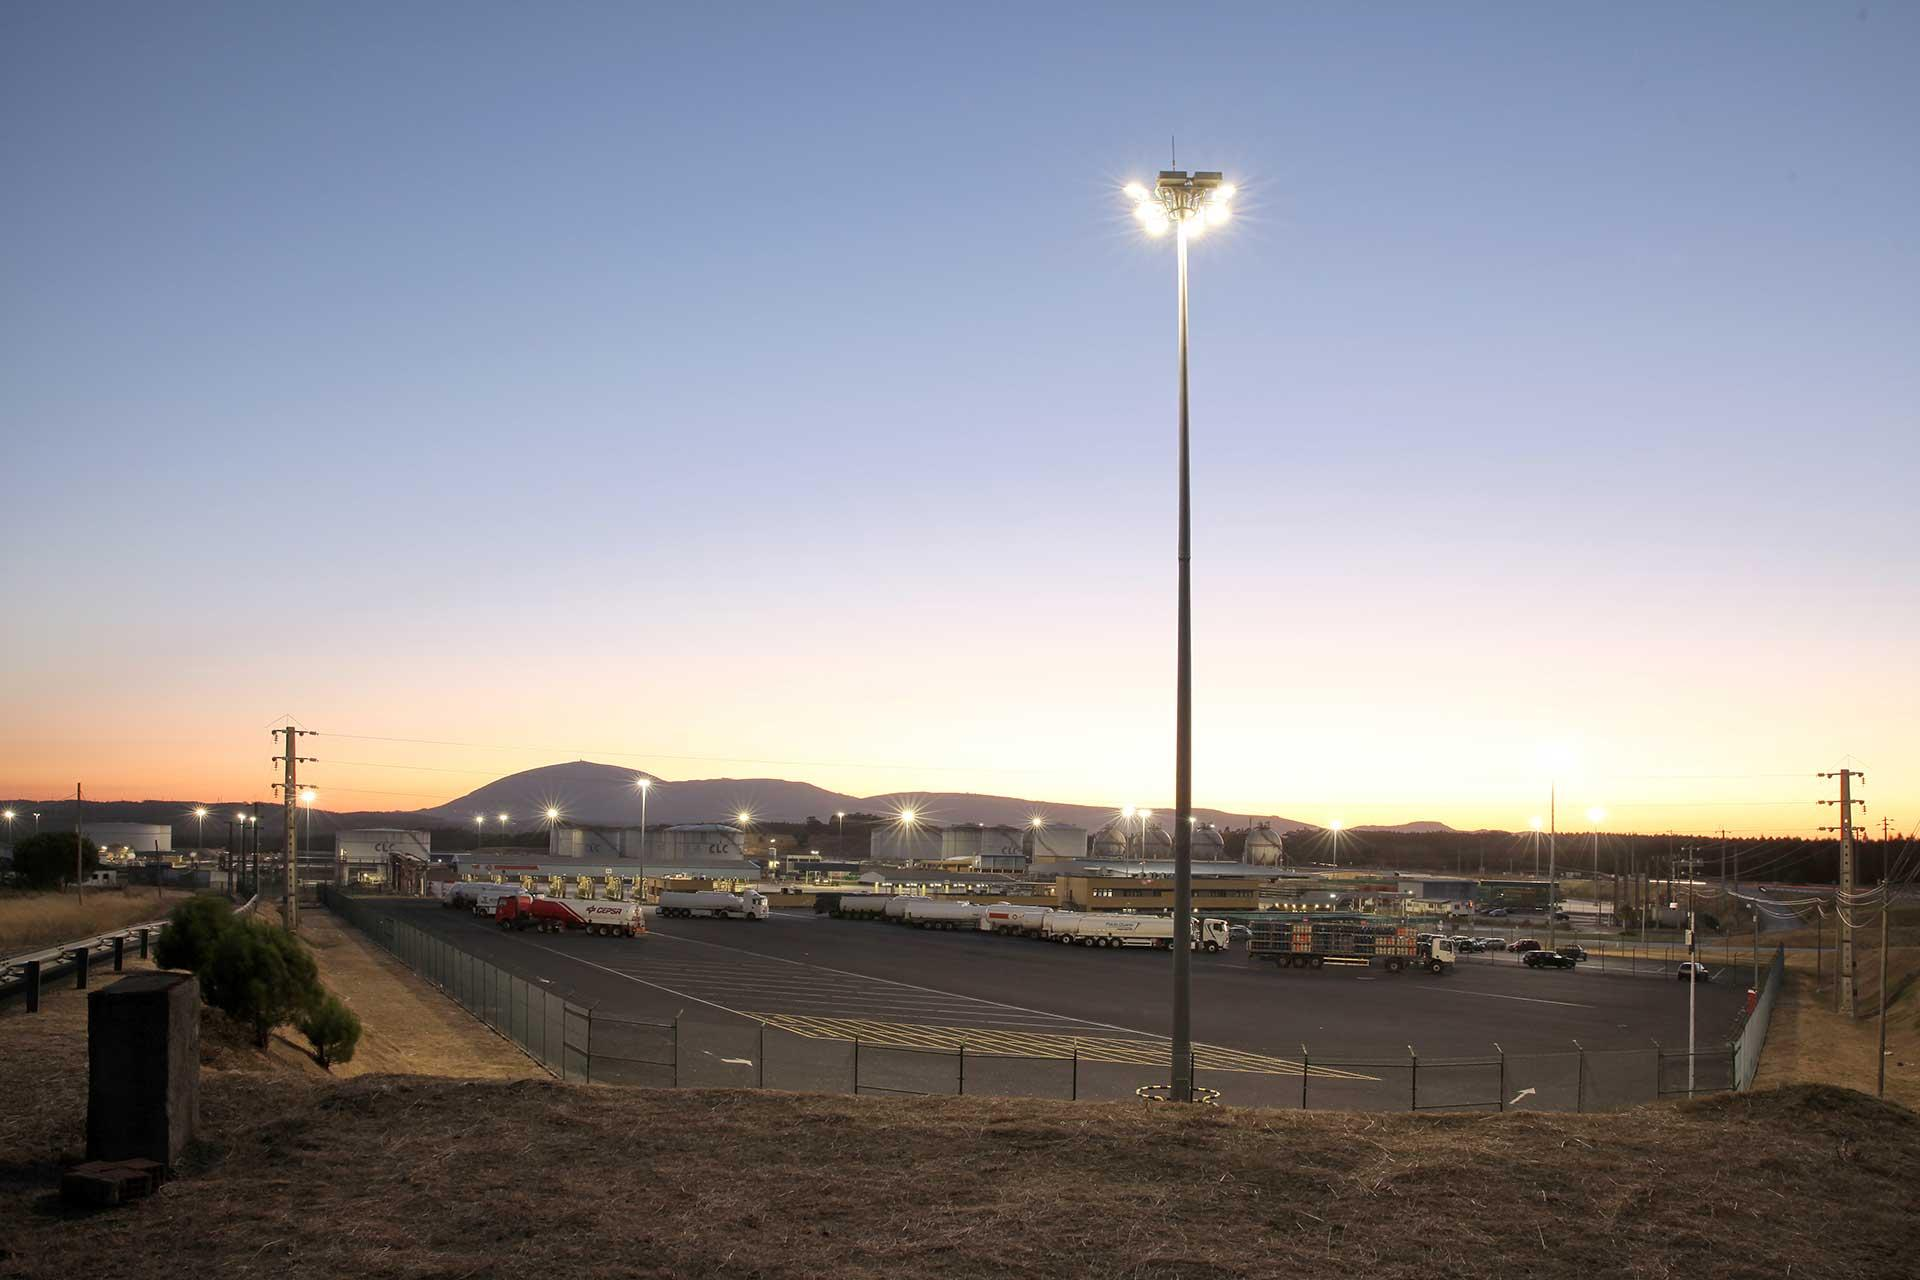 Schréder industry lighting solution cut energy costs by 77% for CLC